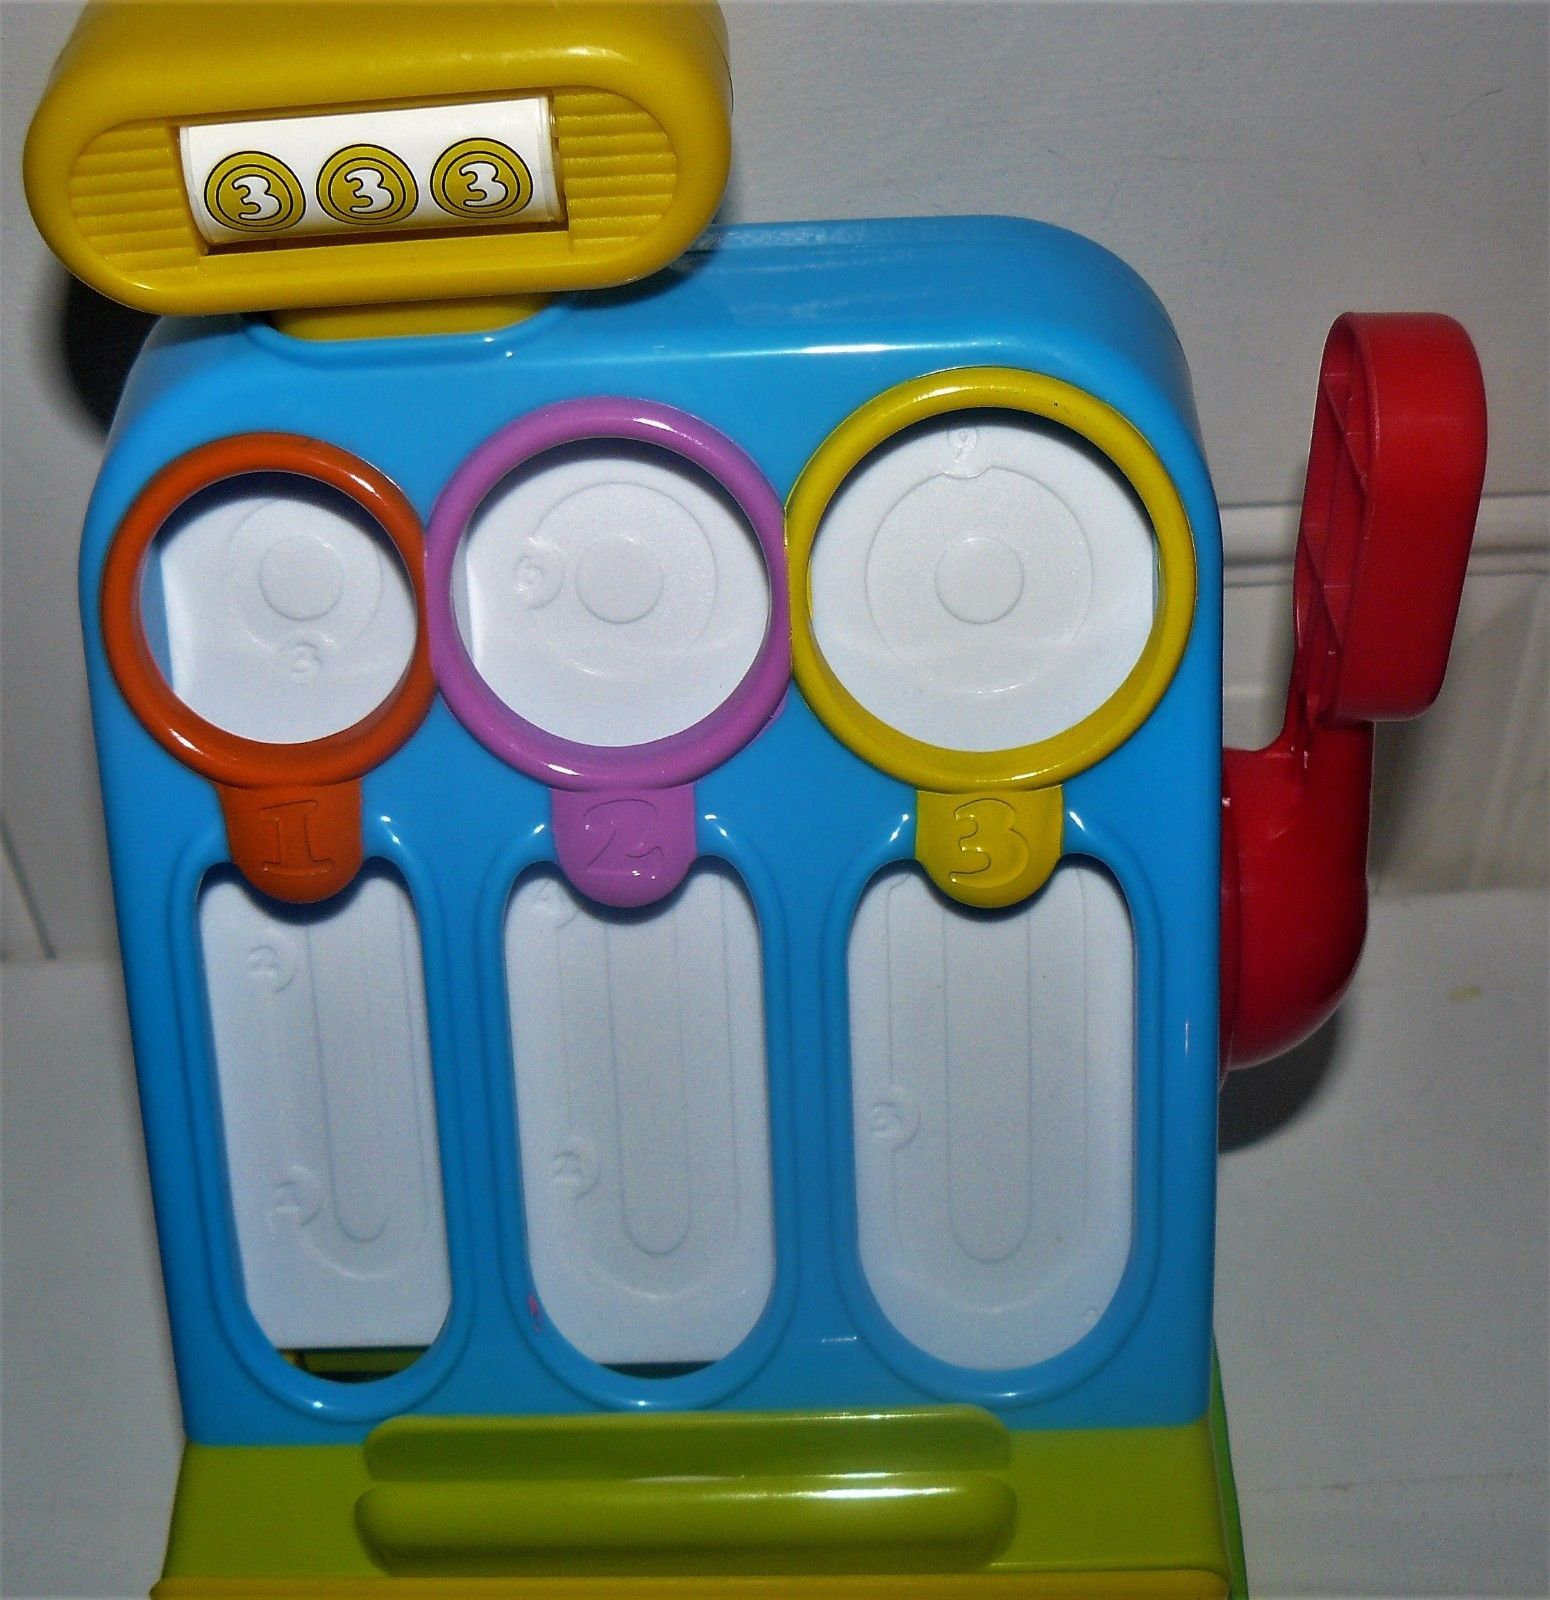 Toy Cash Register Play Set by Little Tikes and 50 similar items